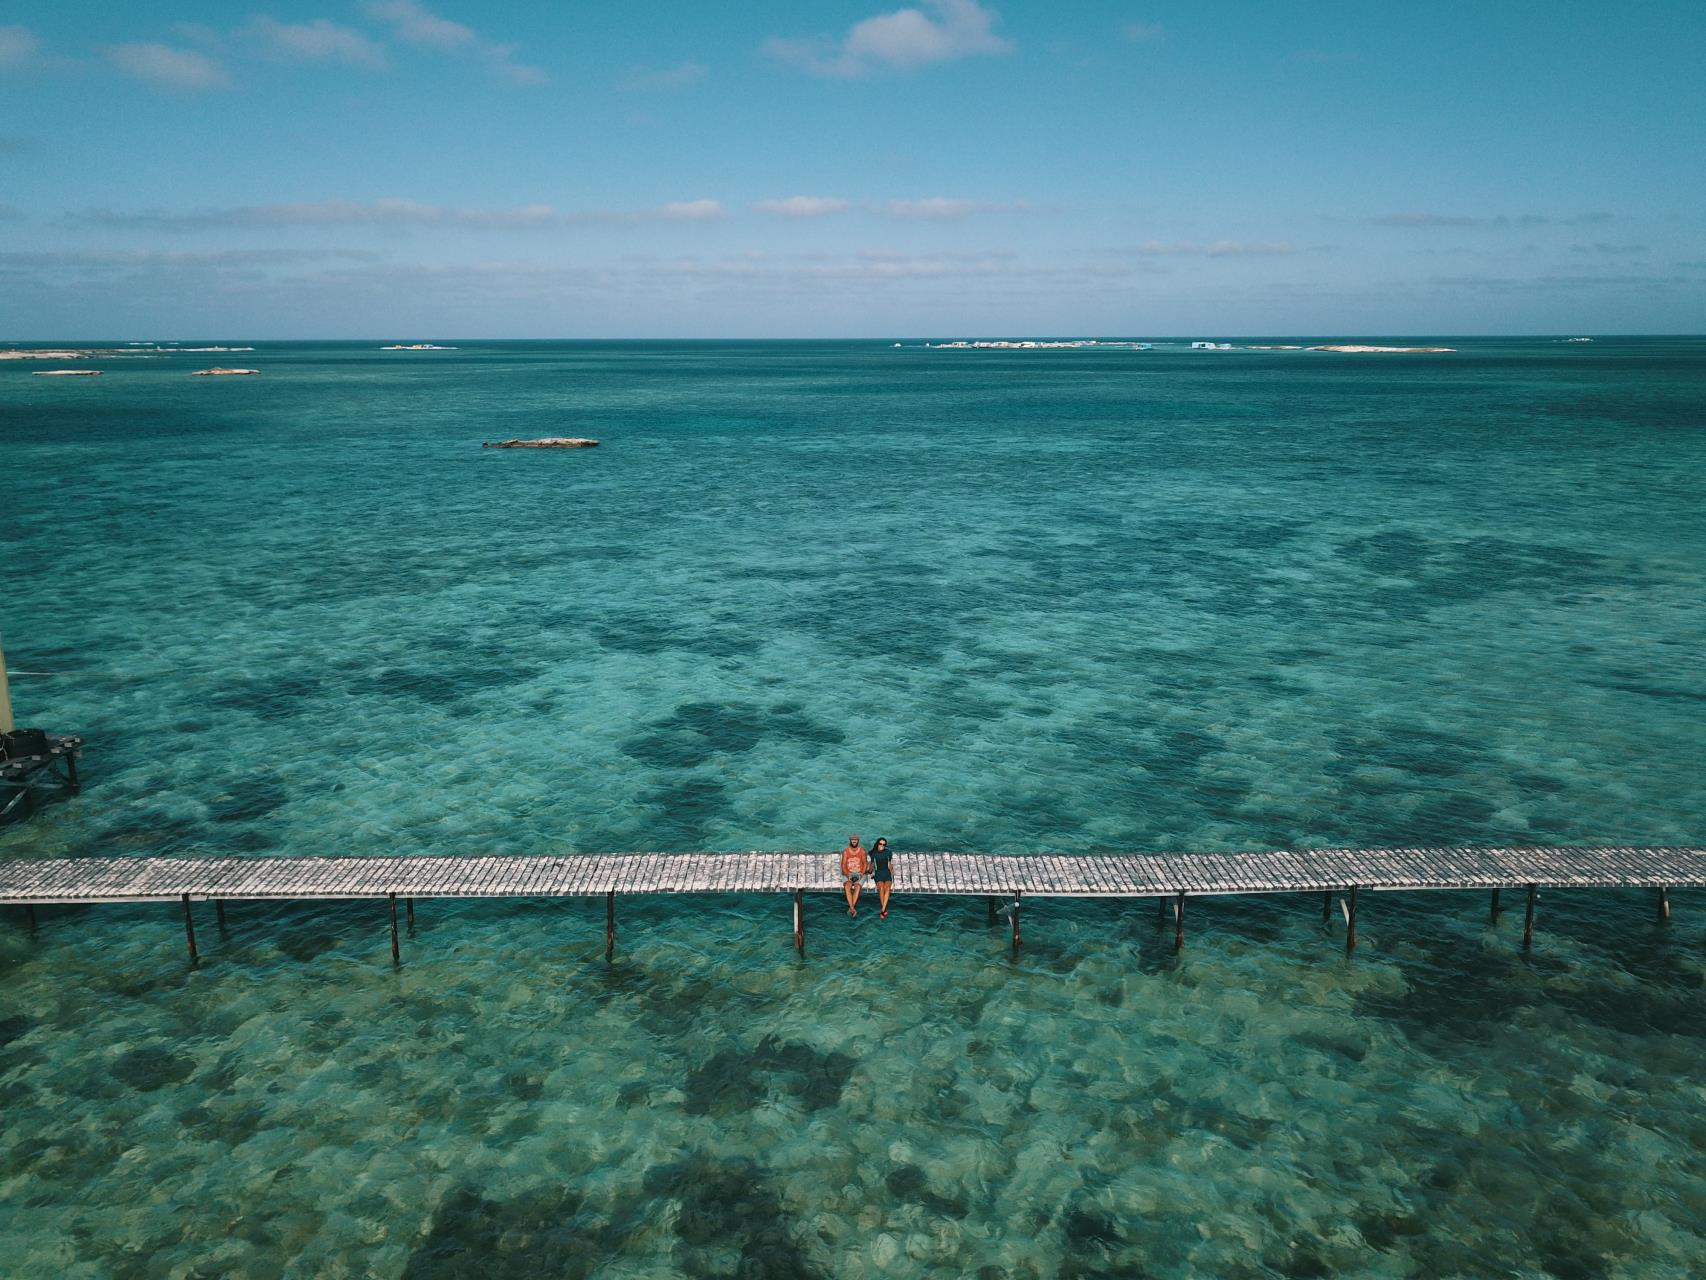 Les Manalas - Abrolhos Islands